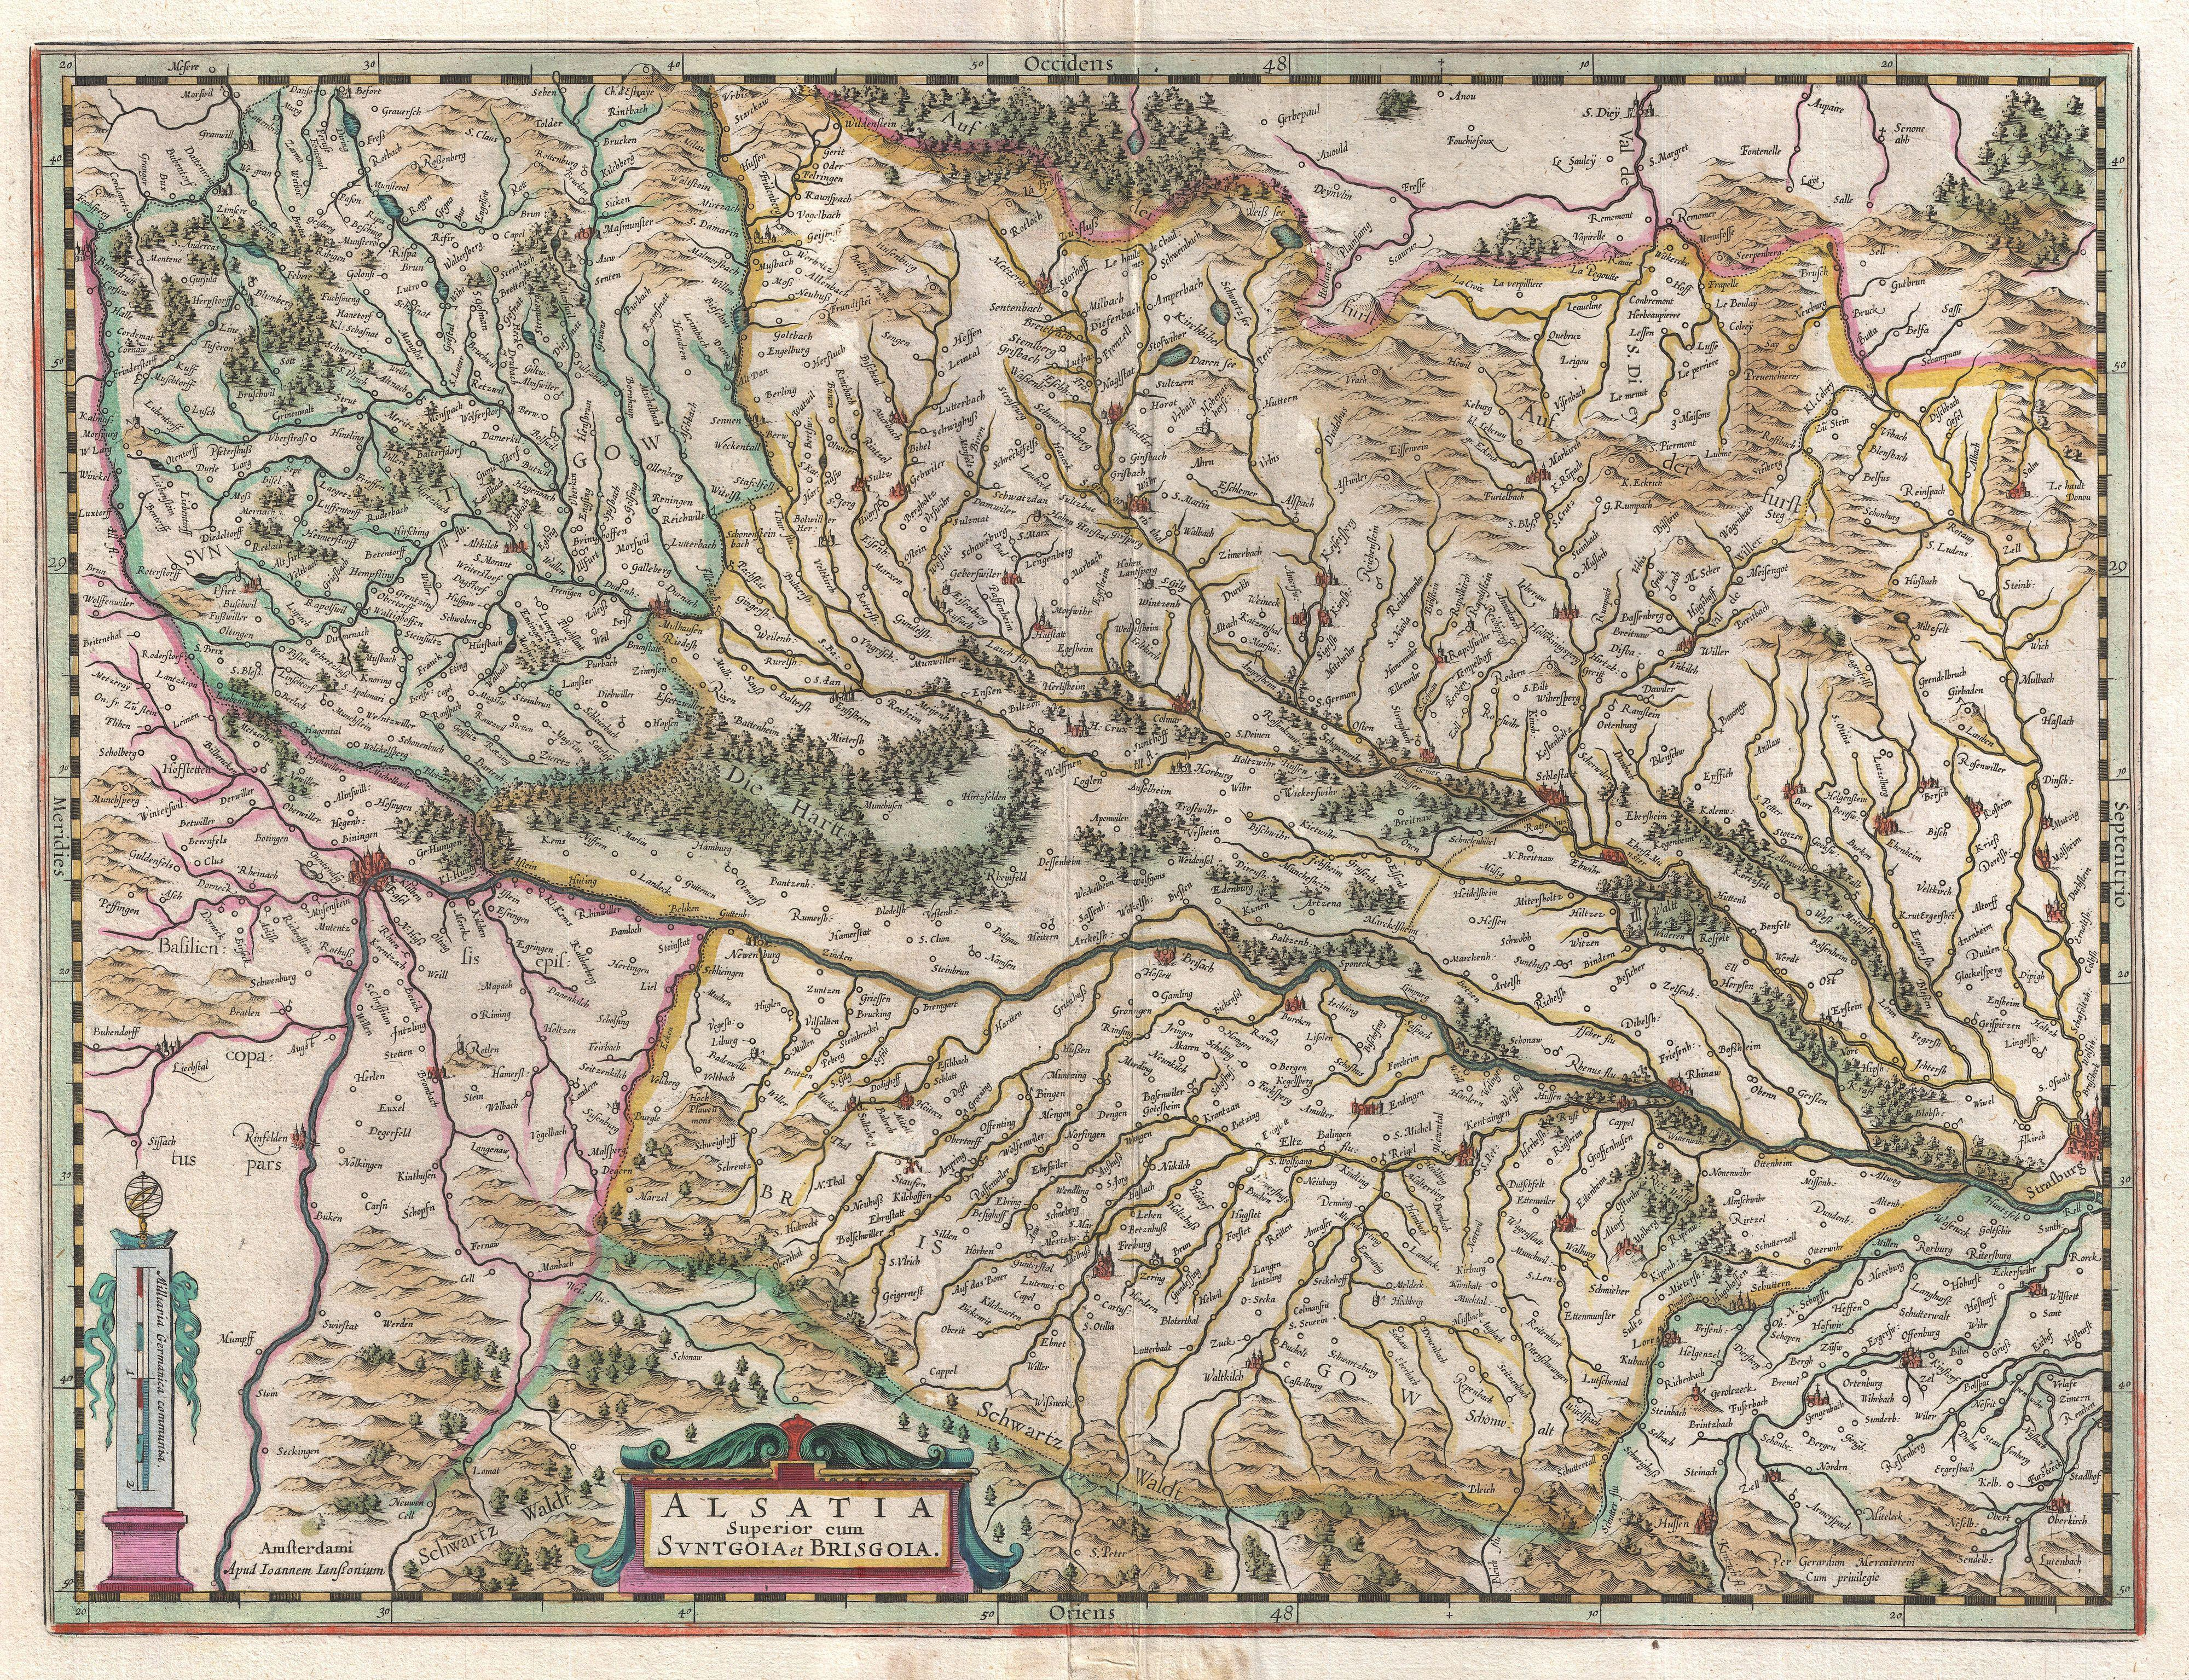 map of us with major cities with File 1644 Jansson Map Of Alsace  Basel And Strasbourg    Geographicus   Alsatiasuperior Jansson 1644 on U S likewise Colima State Mexico Map B0 also File 1644 Jansson Map of Alsace  Basel and Strasbourg    Geographicus   AlsatiaSuperior Jansson 1644 moreover Road Map in addition Skopje.